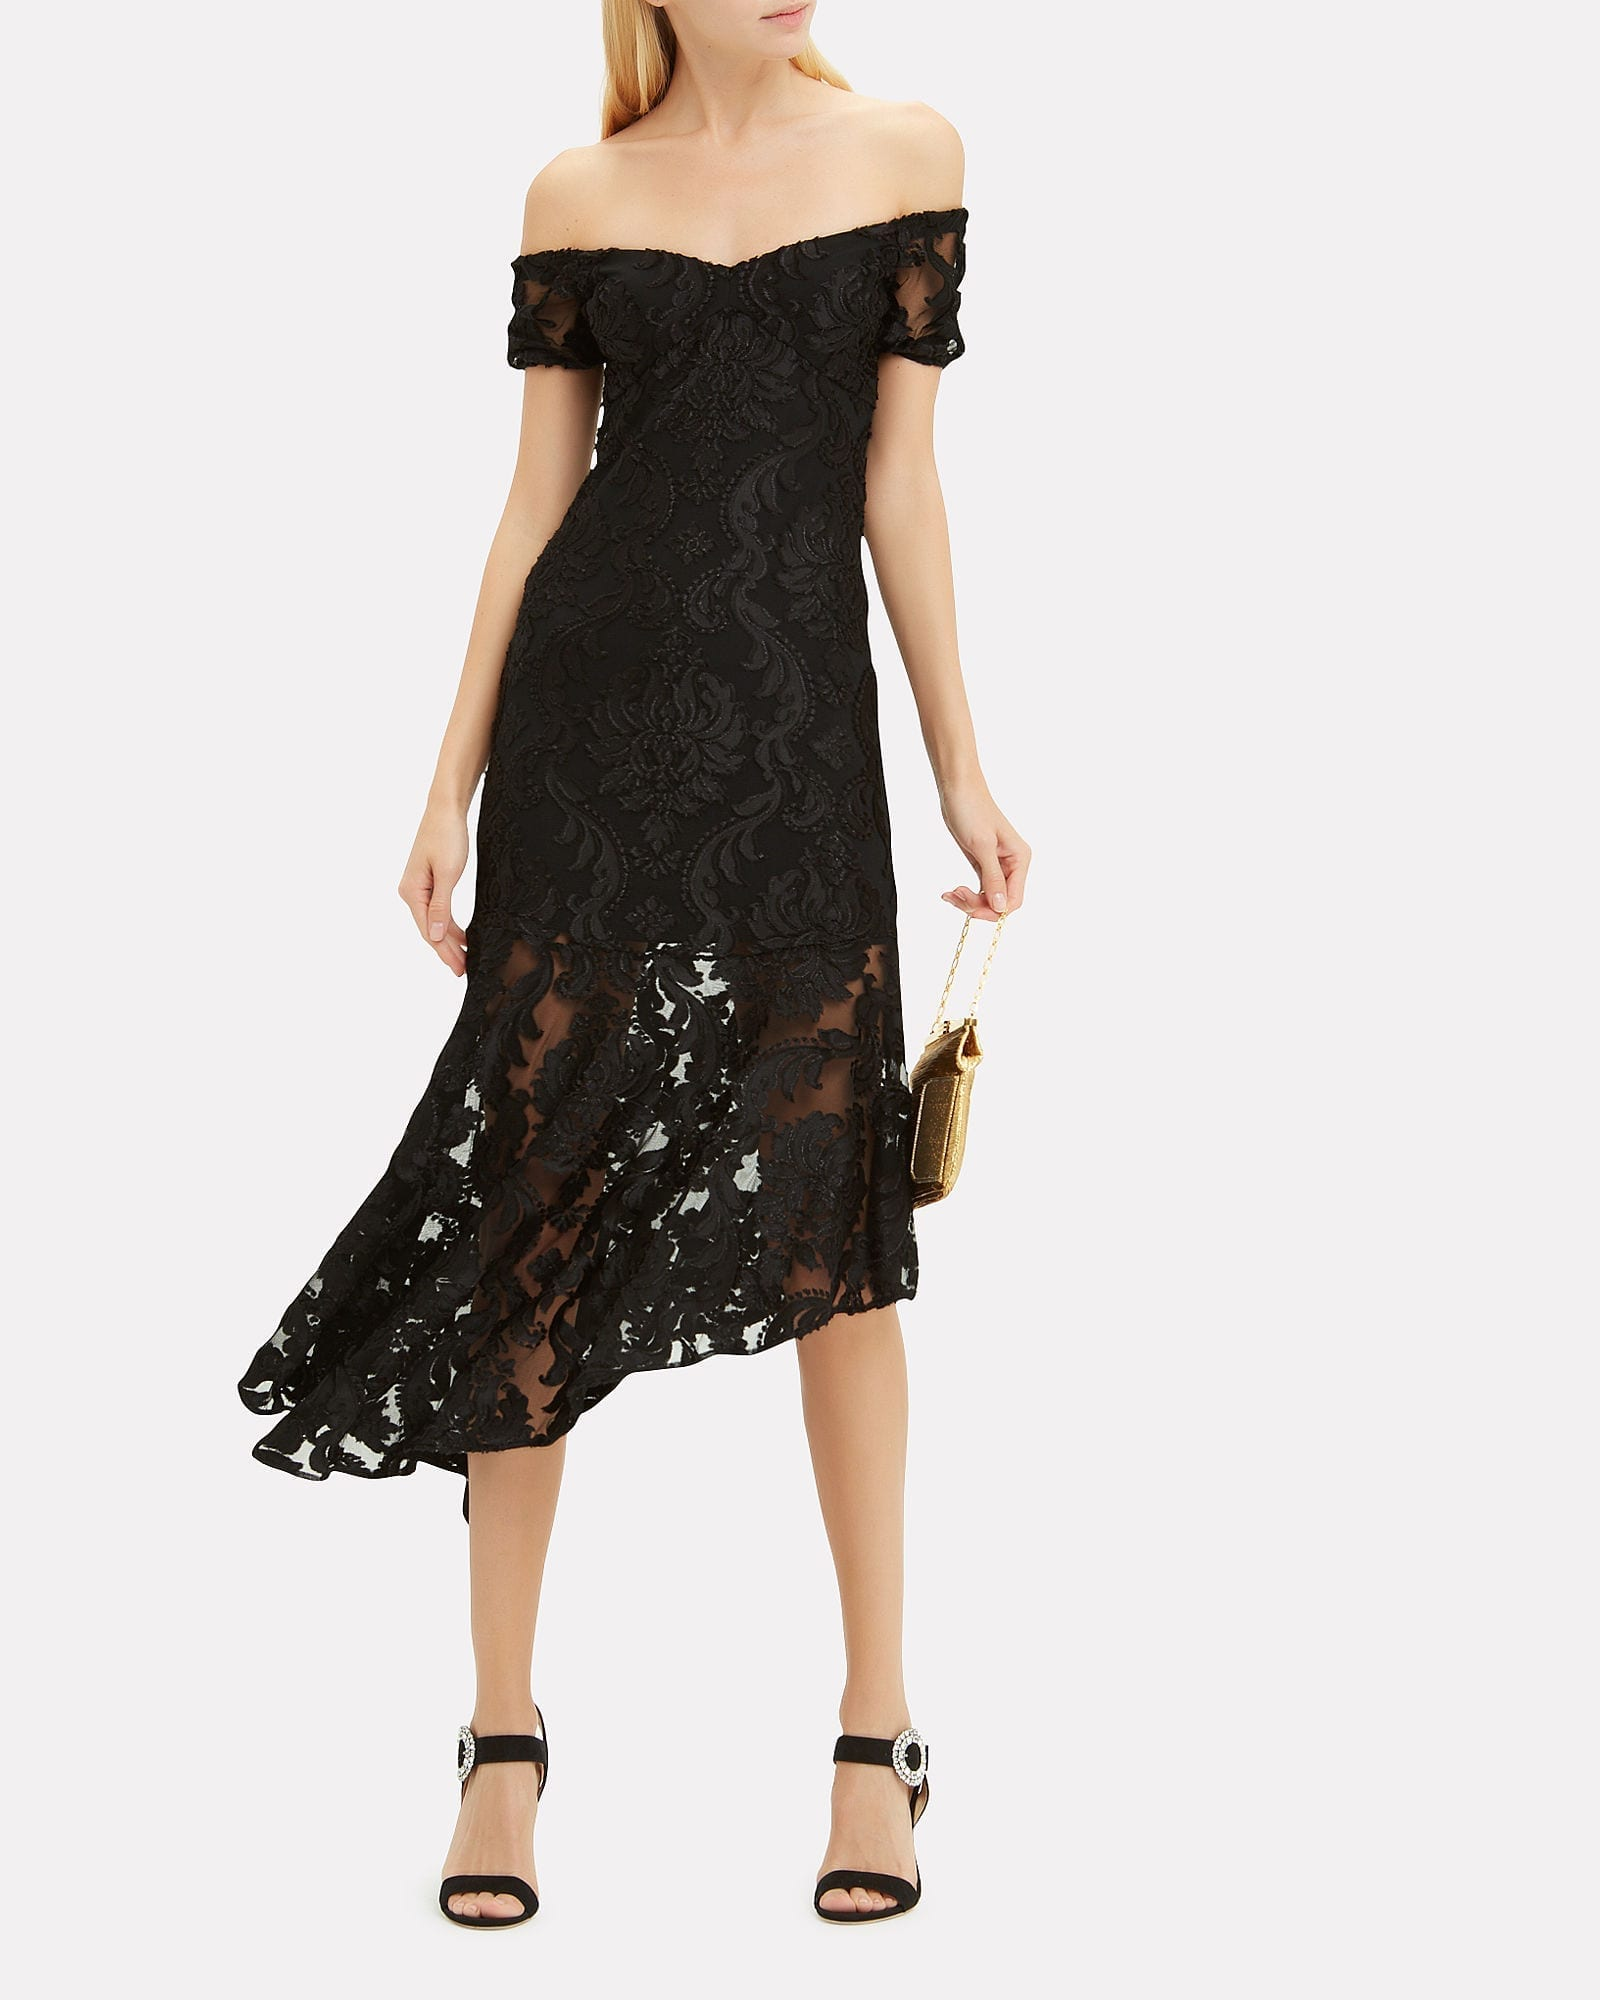 ALICE MCCALL Fleur De Lys Black Dress